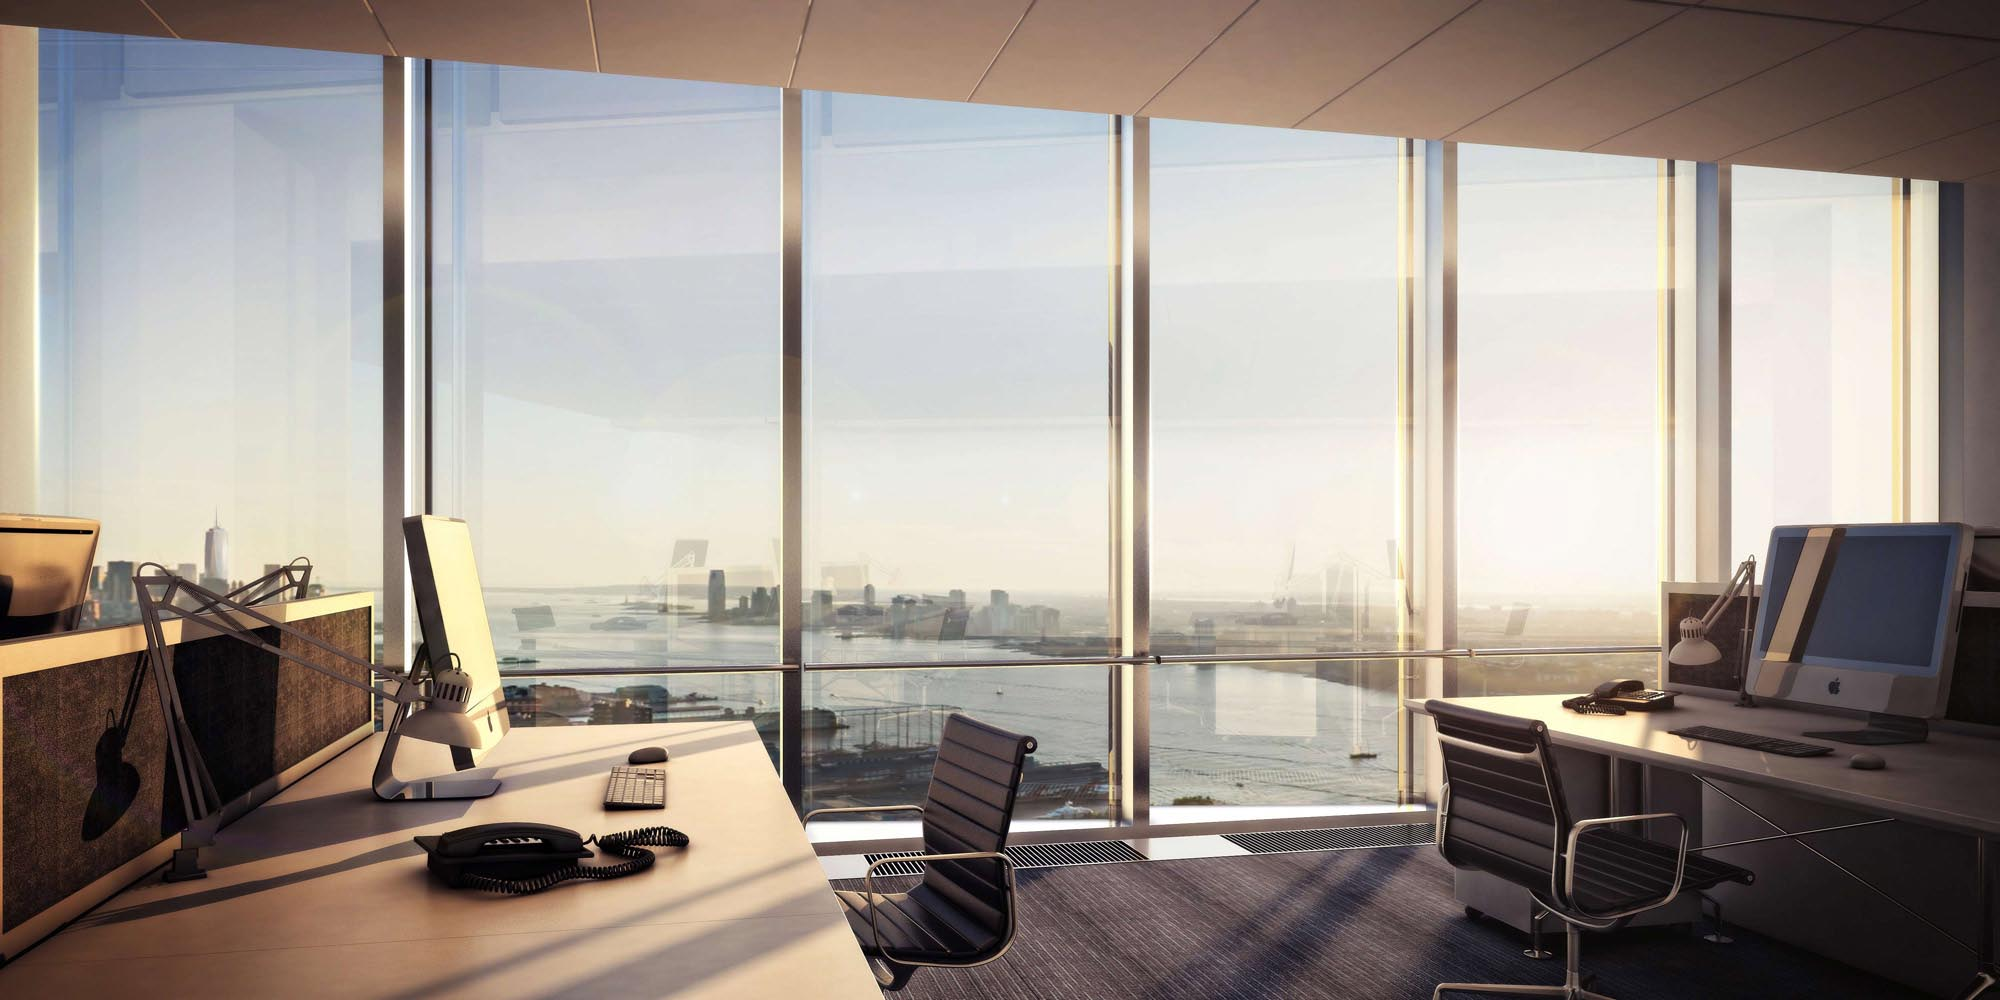 hudson-yards-nyc-10-hudson-yards-open-office-view-south-dv-022012